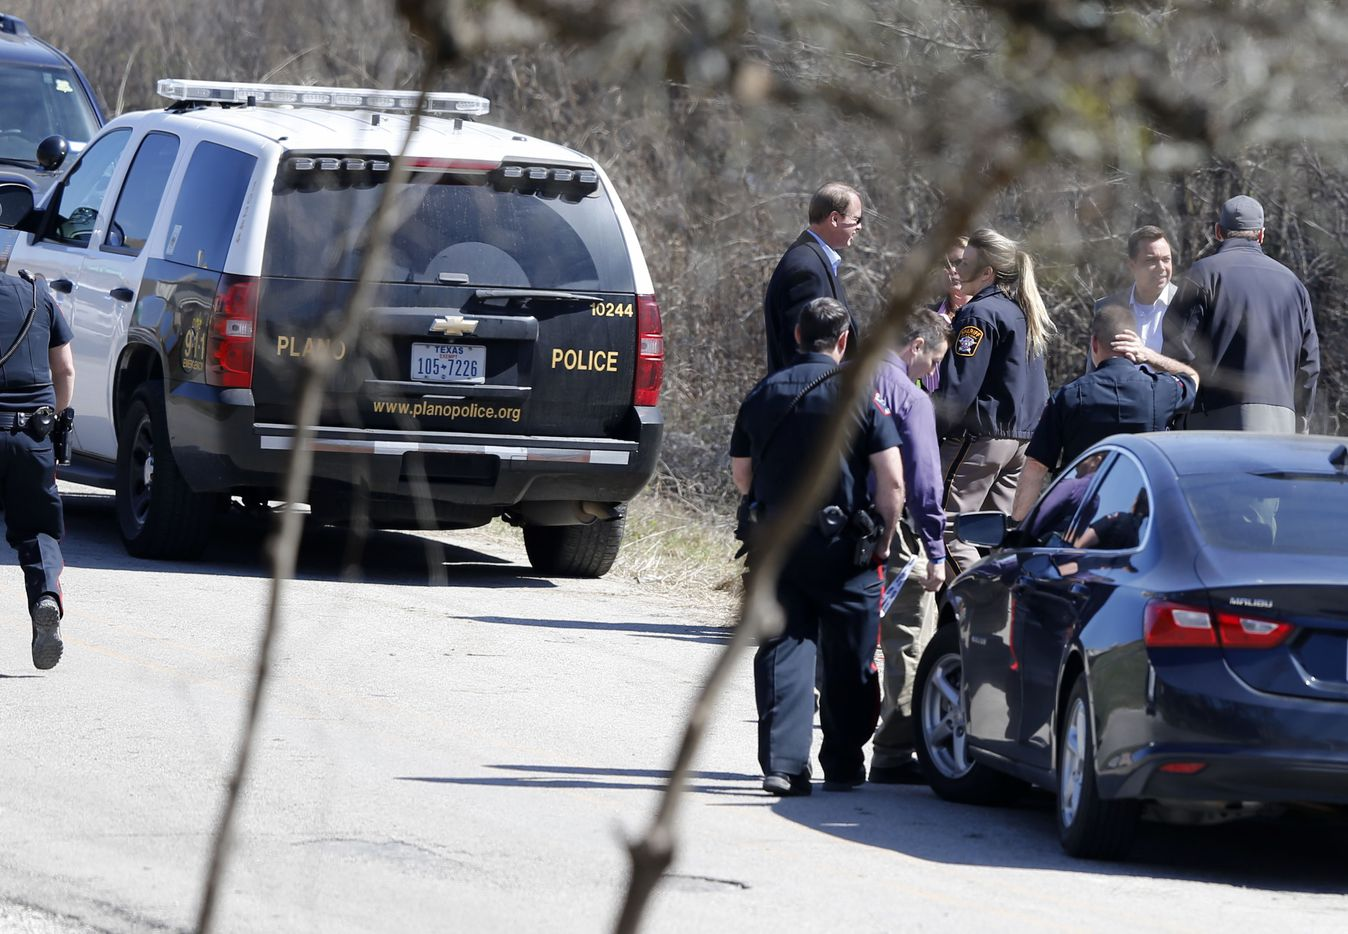 Plano police at the scene where possible human remains were found near the intersection of Taylor Blvd. and Mesquite Lane, in Anna, Texas on Wednesday, March 7, 2018.